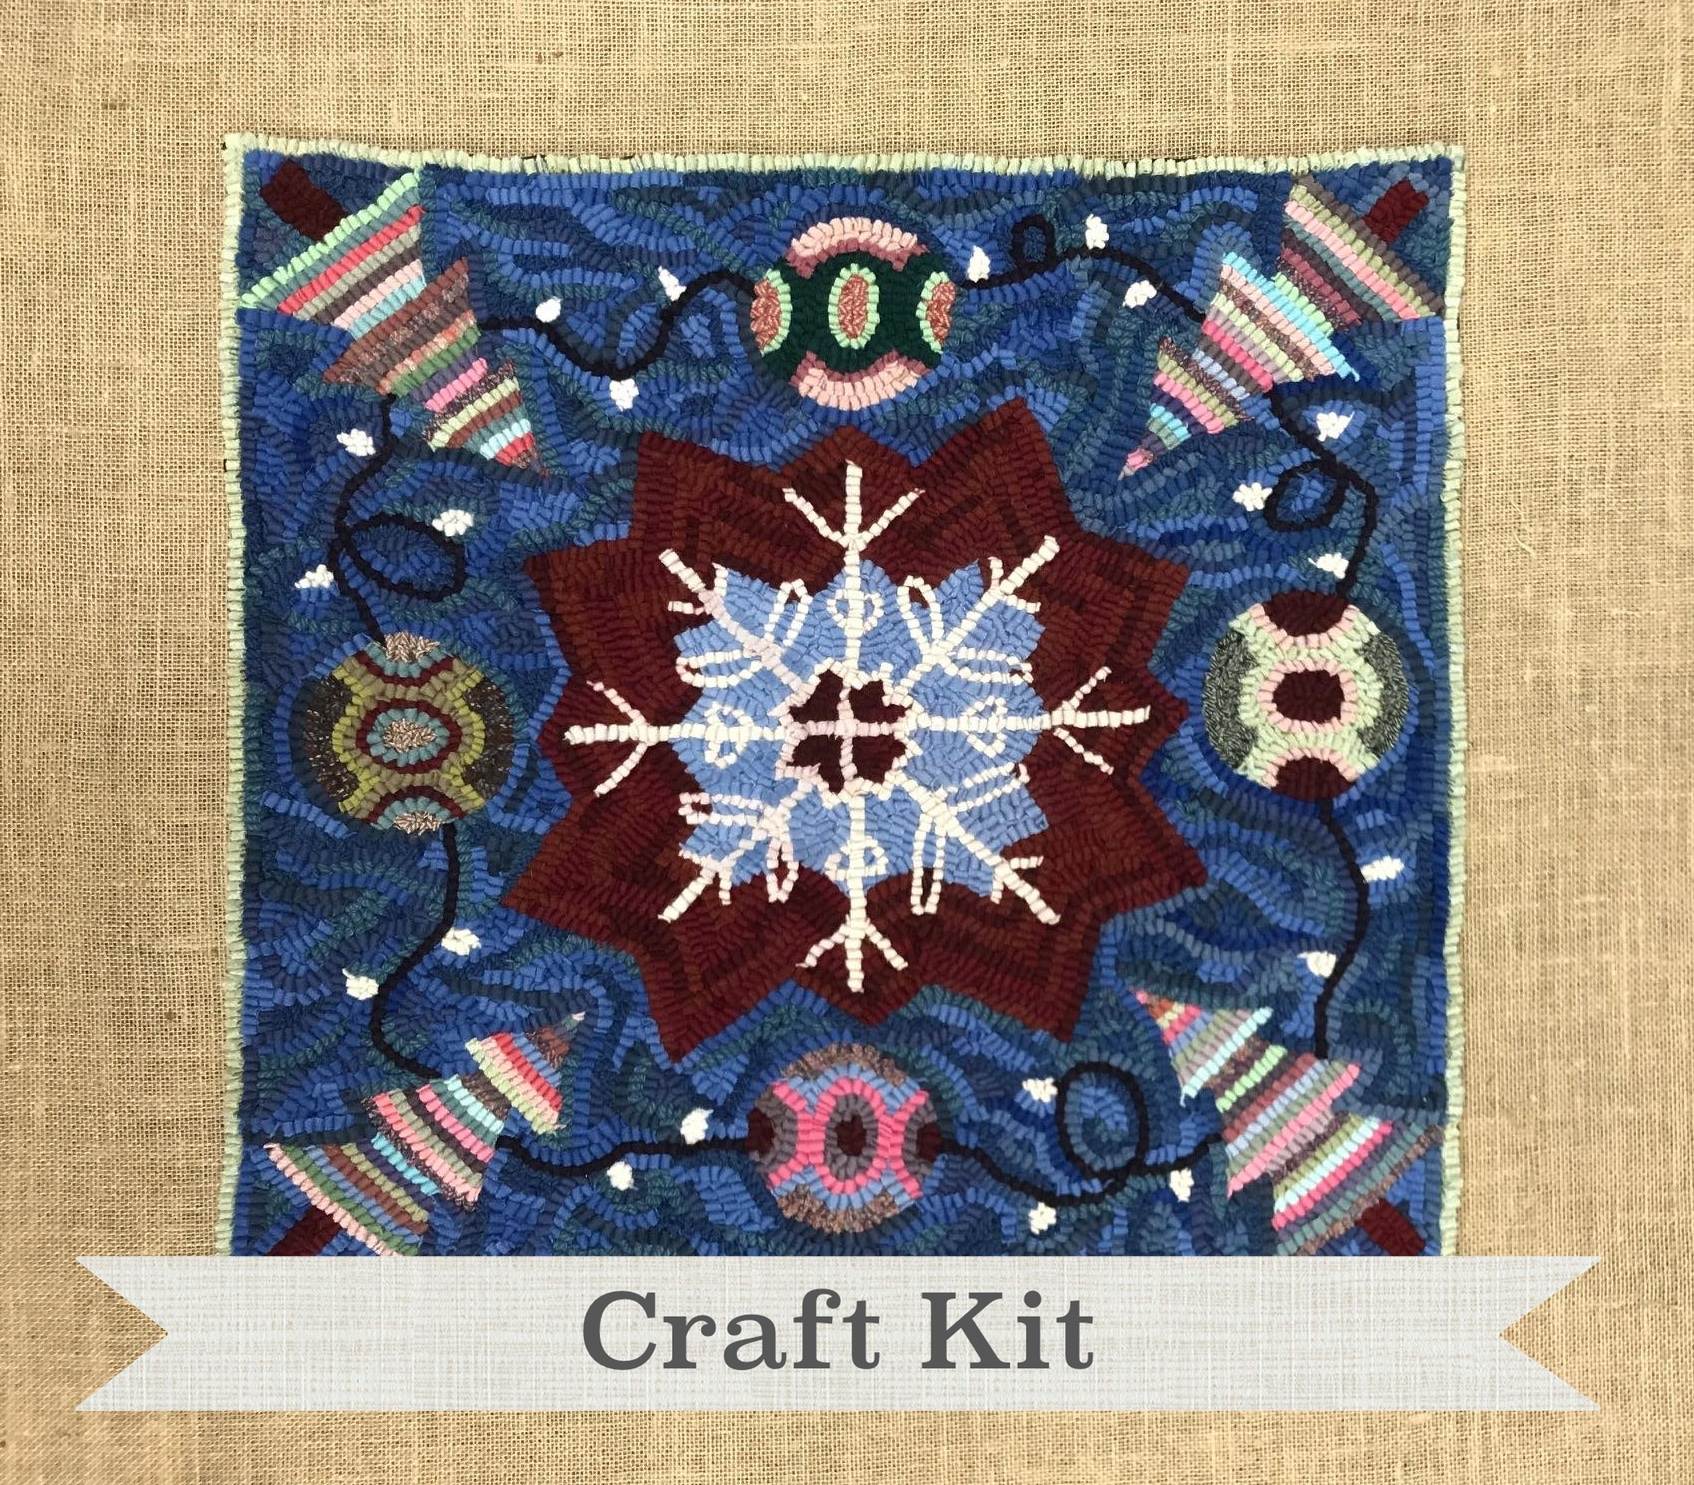 craft kit.jpg